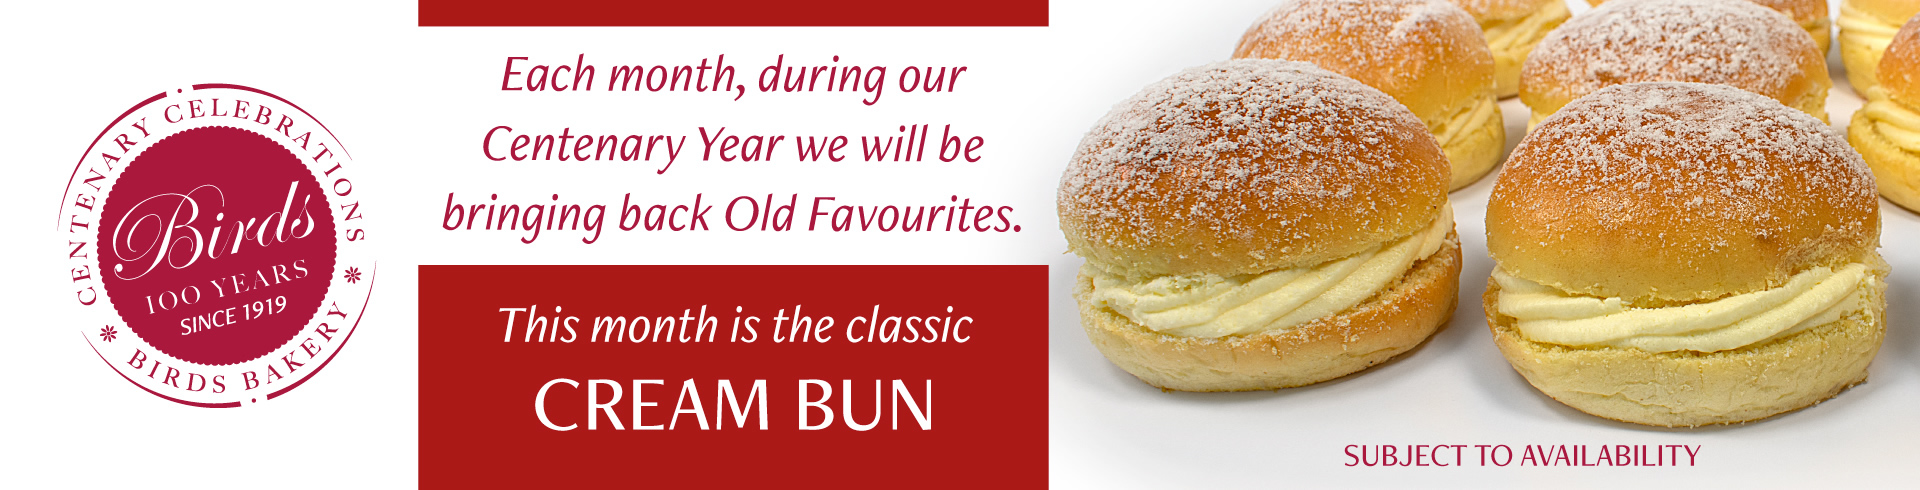 Each month, during our Centenary Year we will be bringing back Old Favourites. This month is the classic Cream Bun, subject to availability